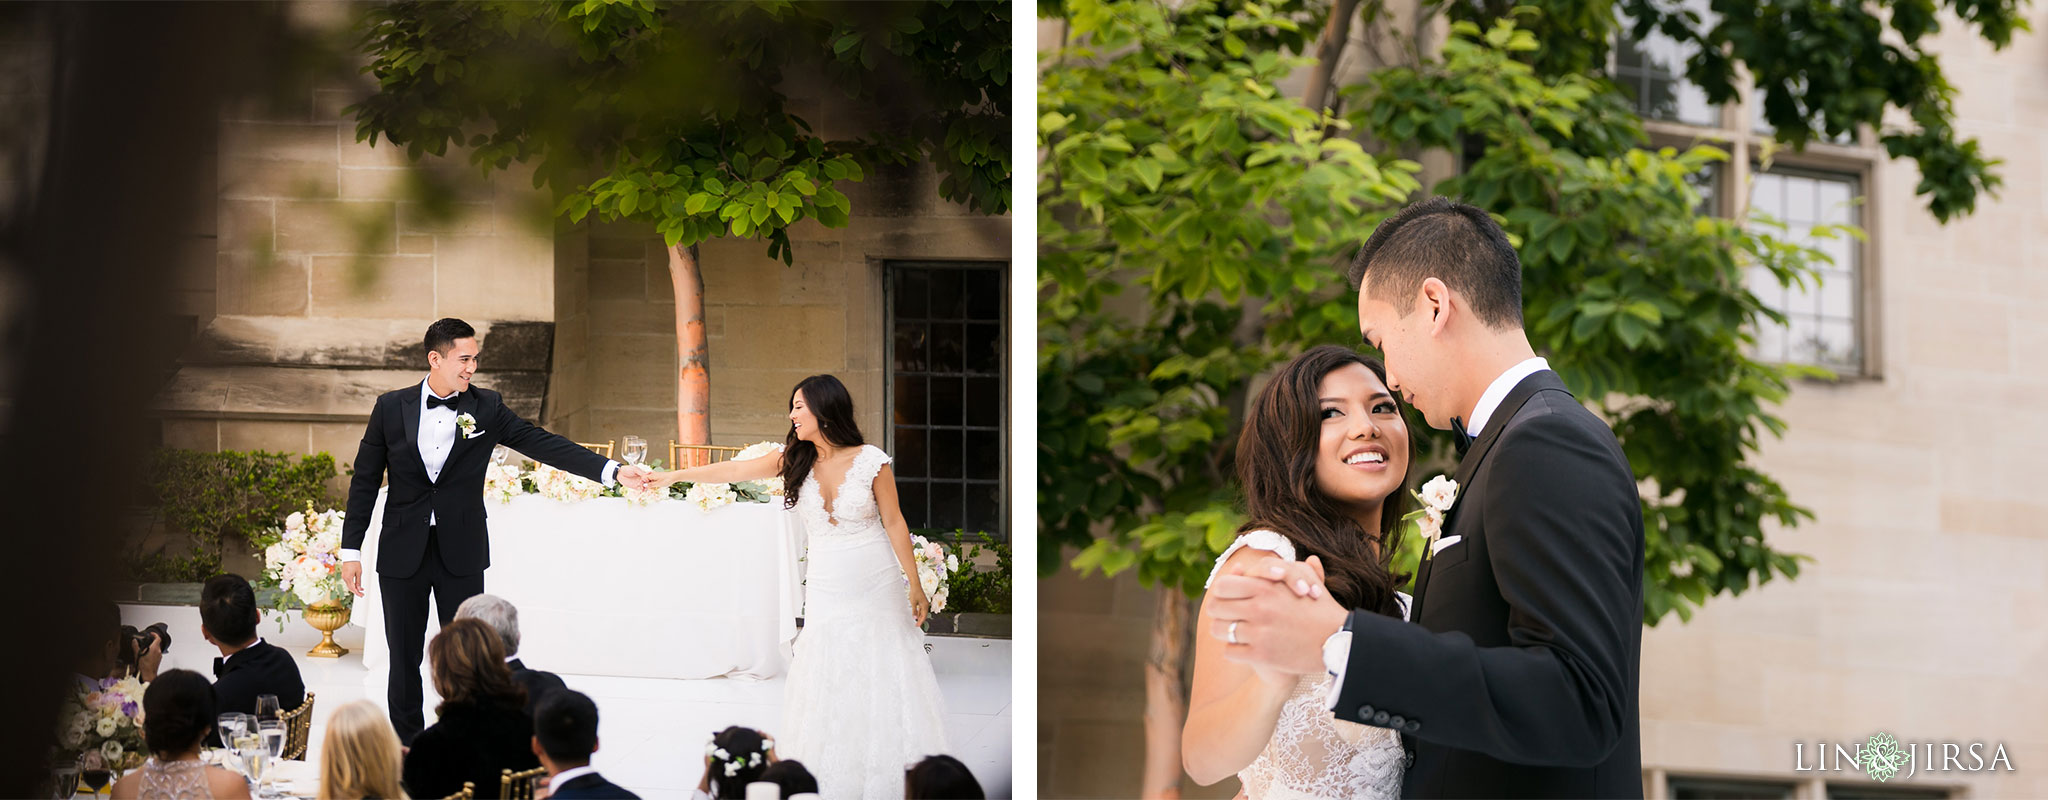 31 greystone mansion los angeles wedding reception photography